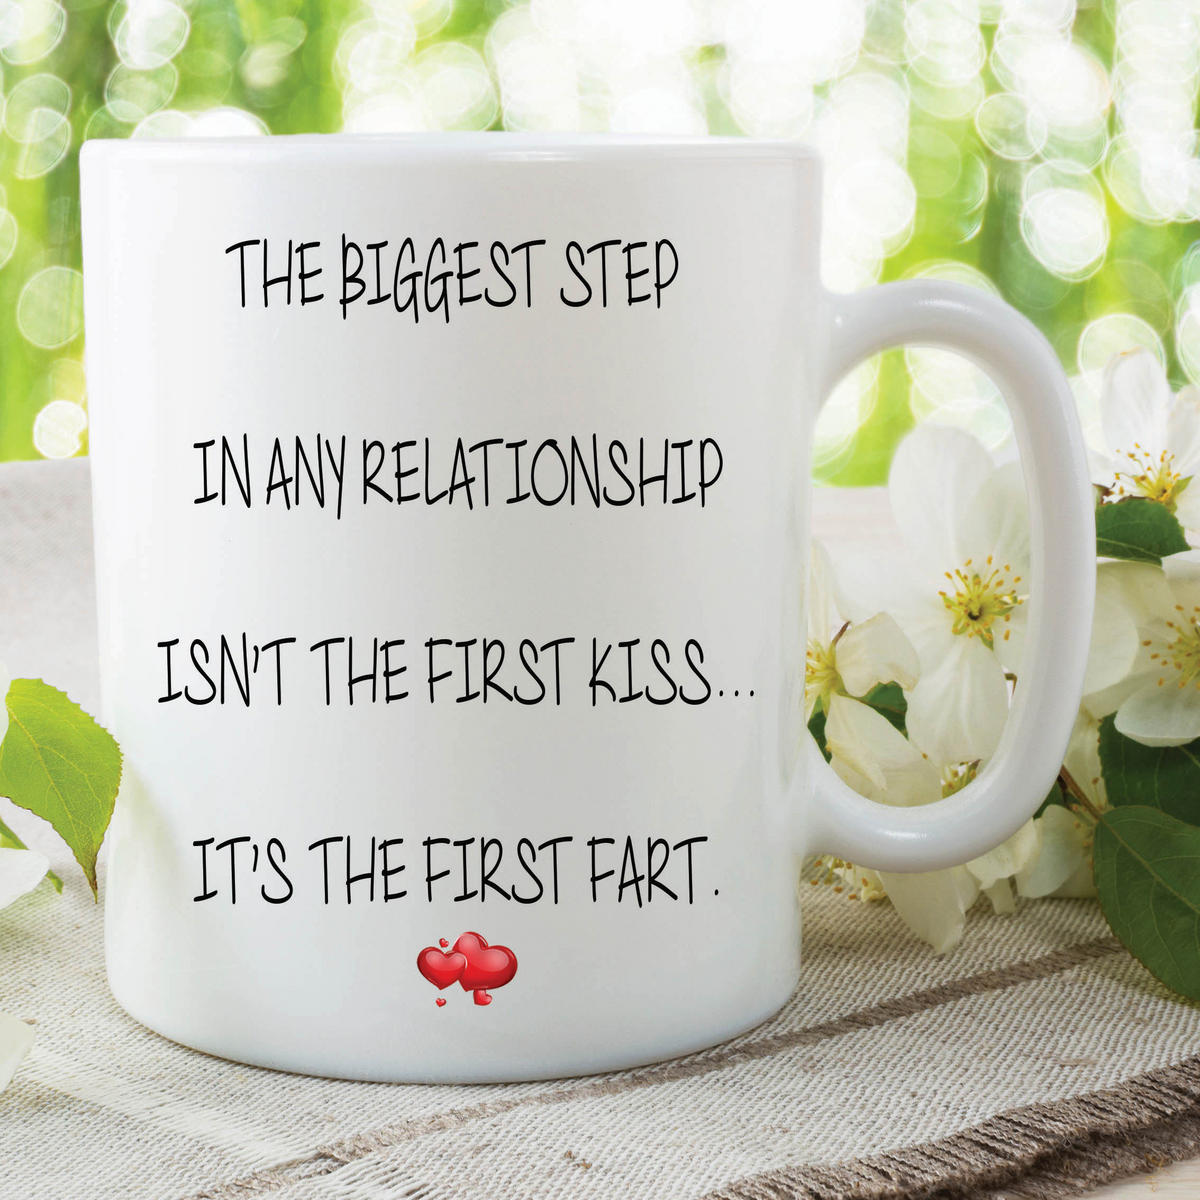 Fart Mug First Fart Funny Novelty Gifts Girlfriend Valentines Joke Cup WSDMUG598